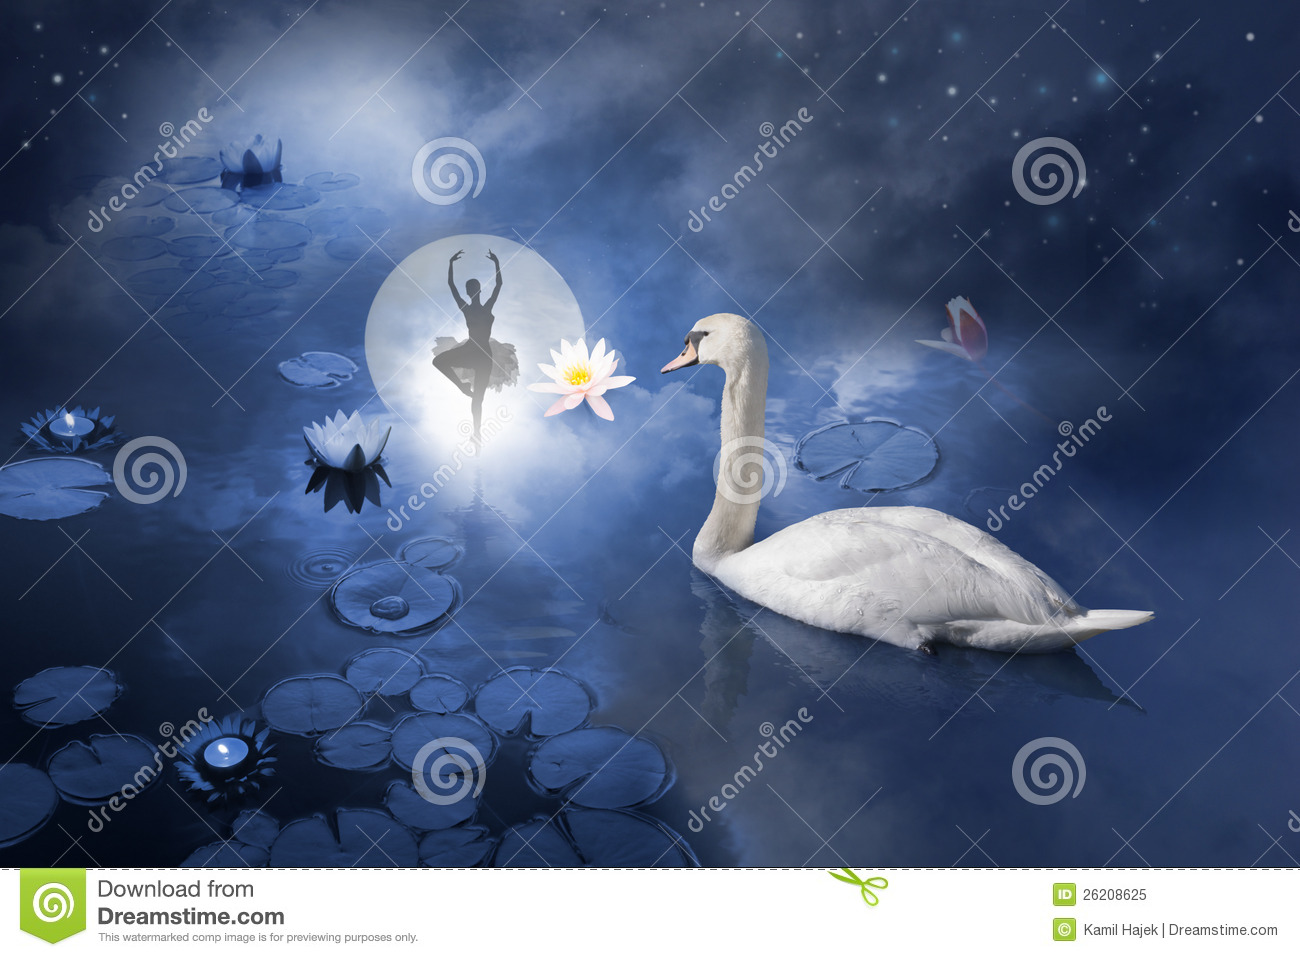 Royalty Free Stock Photo Swan Ballerina Moon Image26208625 on ruins on moon